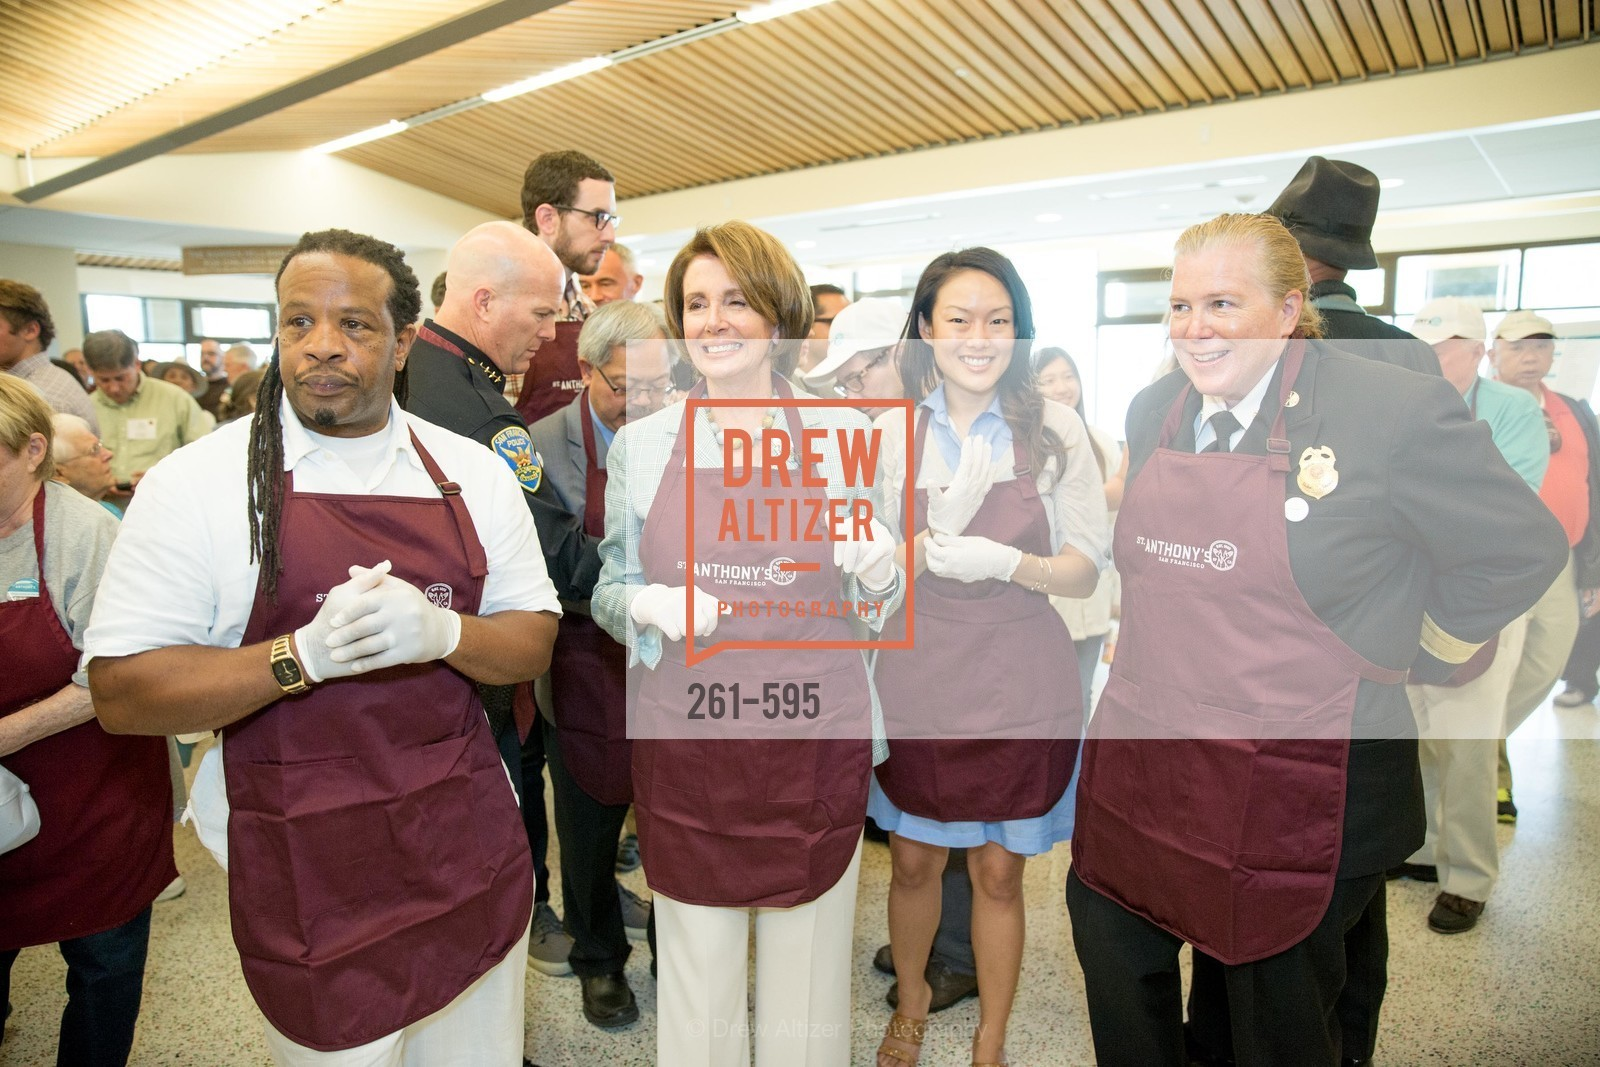 Tyrone Hopper, The Honorable Nancy Pelosi, Jane Kim, Joanne Hayes-White, ST. ANTHONY'S Dining Room Ribbon Cutting Ceremony, US, October 4th, 2014,Drew Altizer, Drew Altizer Photography, full-service agency, private events, San Francisco photographer, photographer california